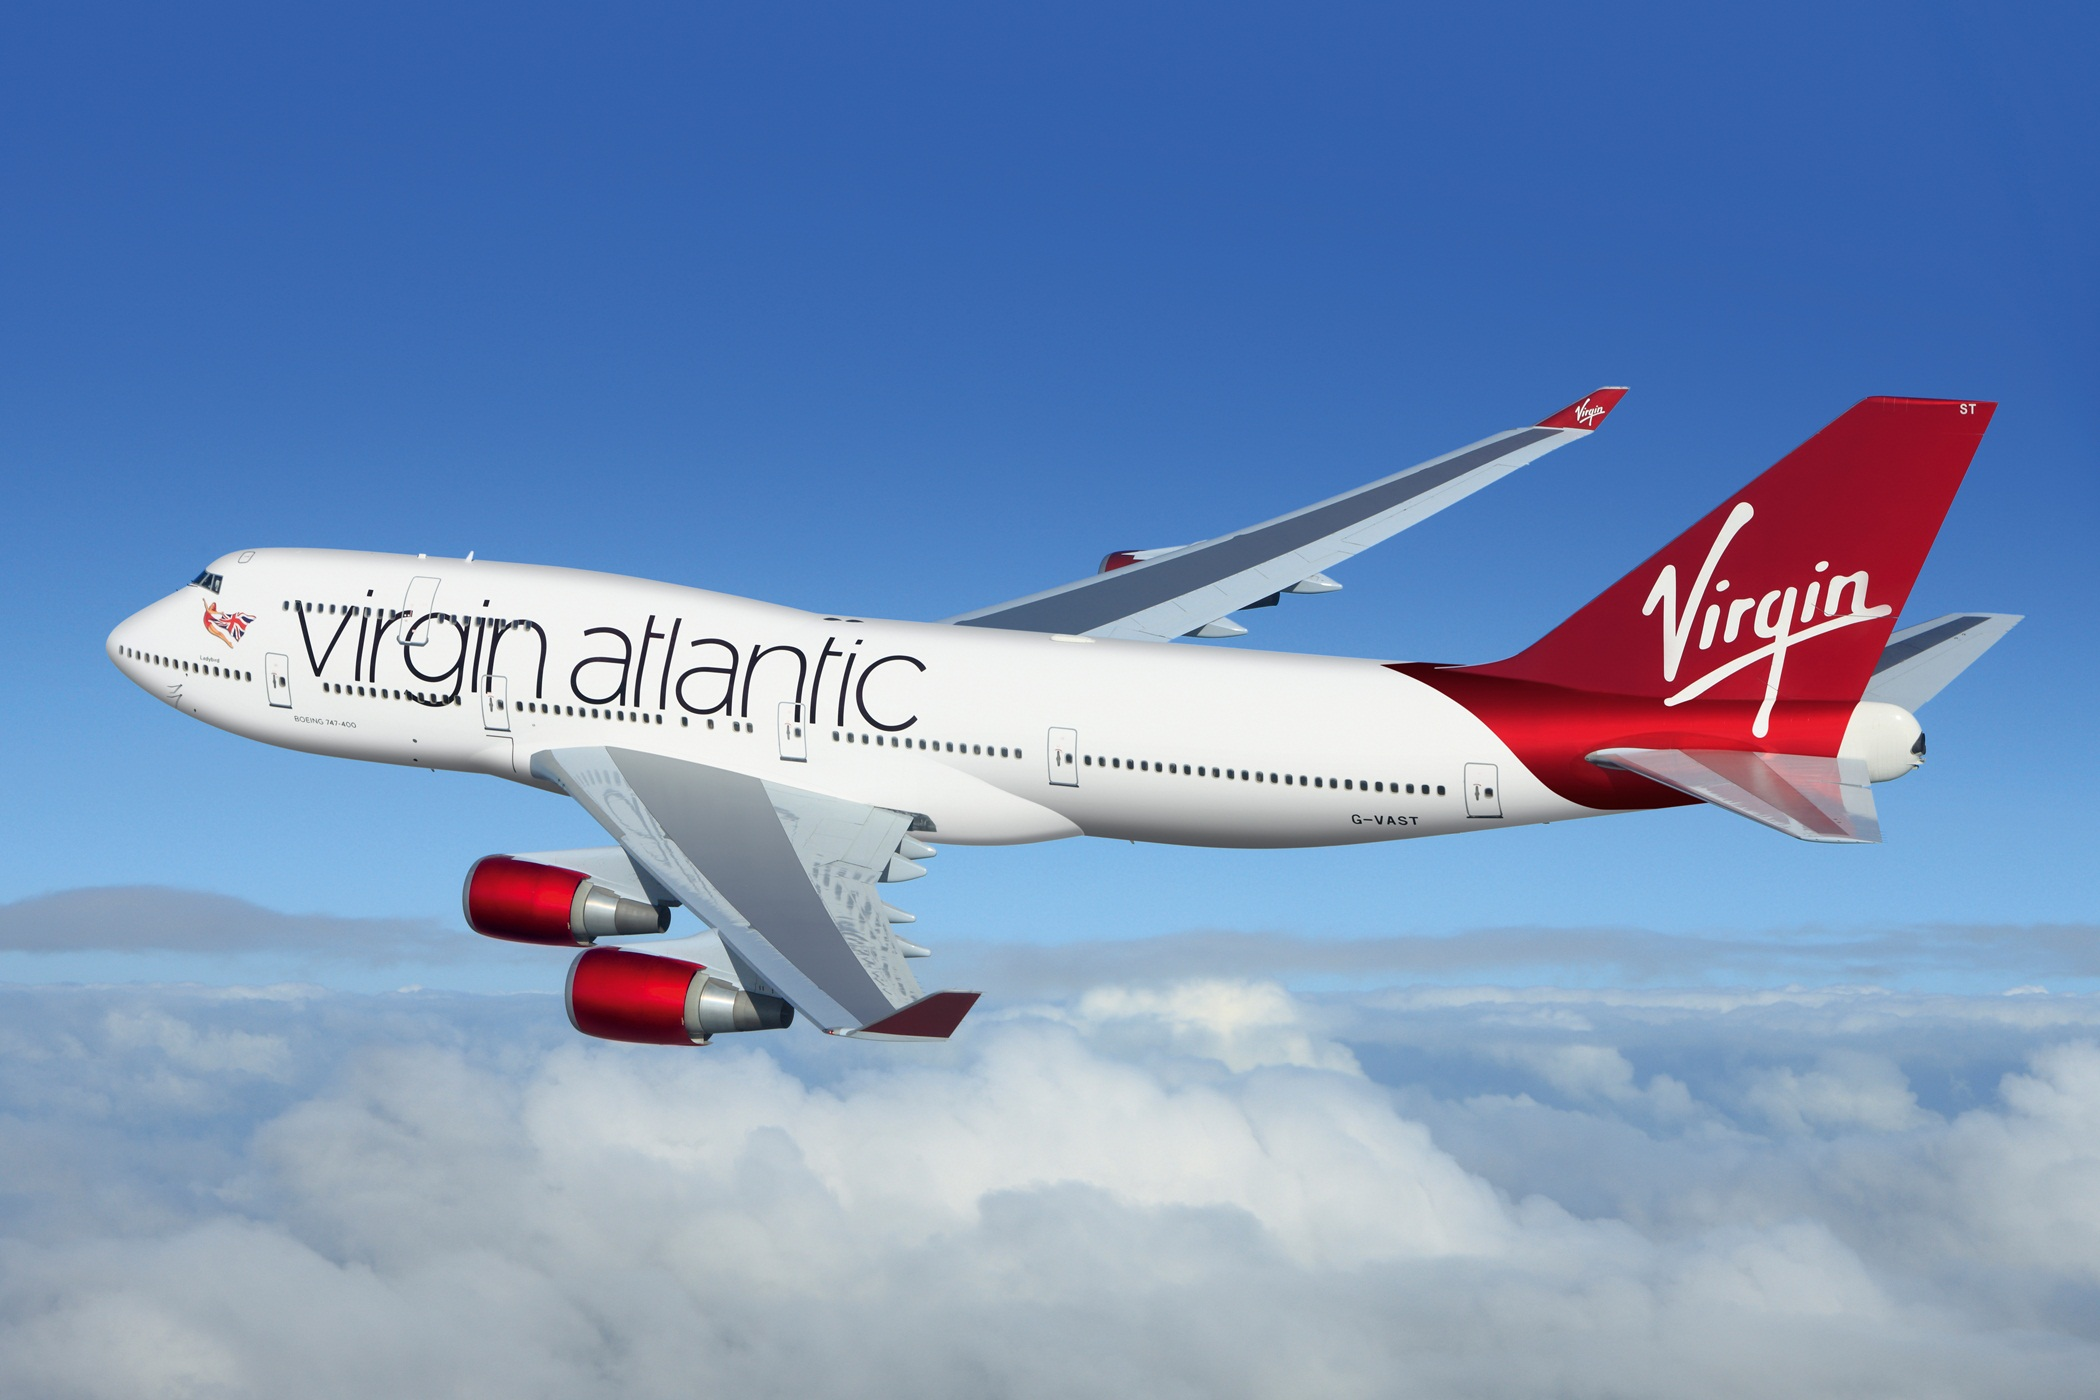 Virgin America Drops Virgin Atlantic - The Wanderlusty